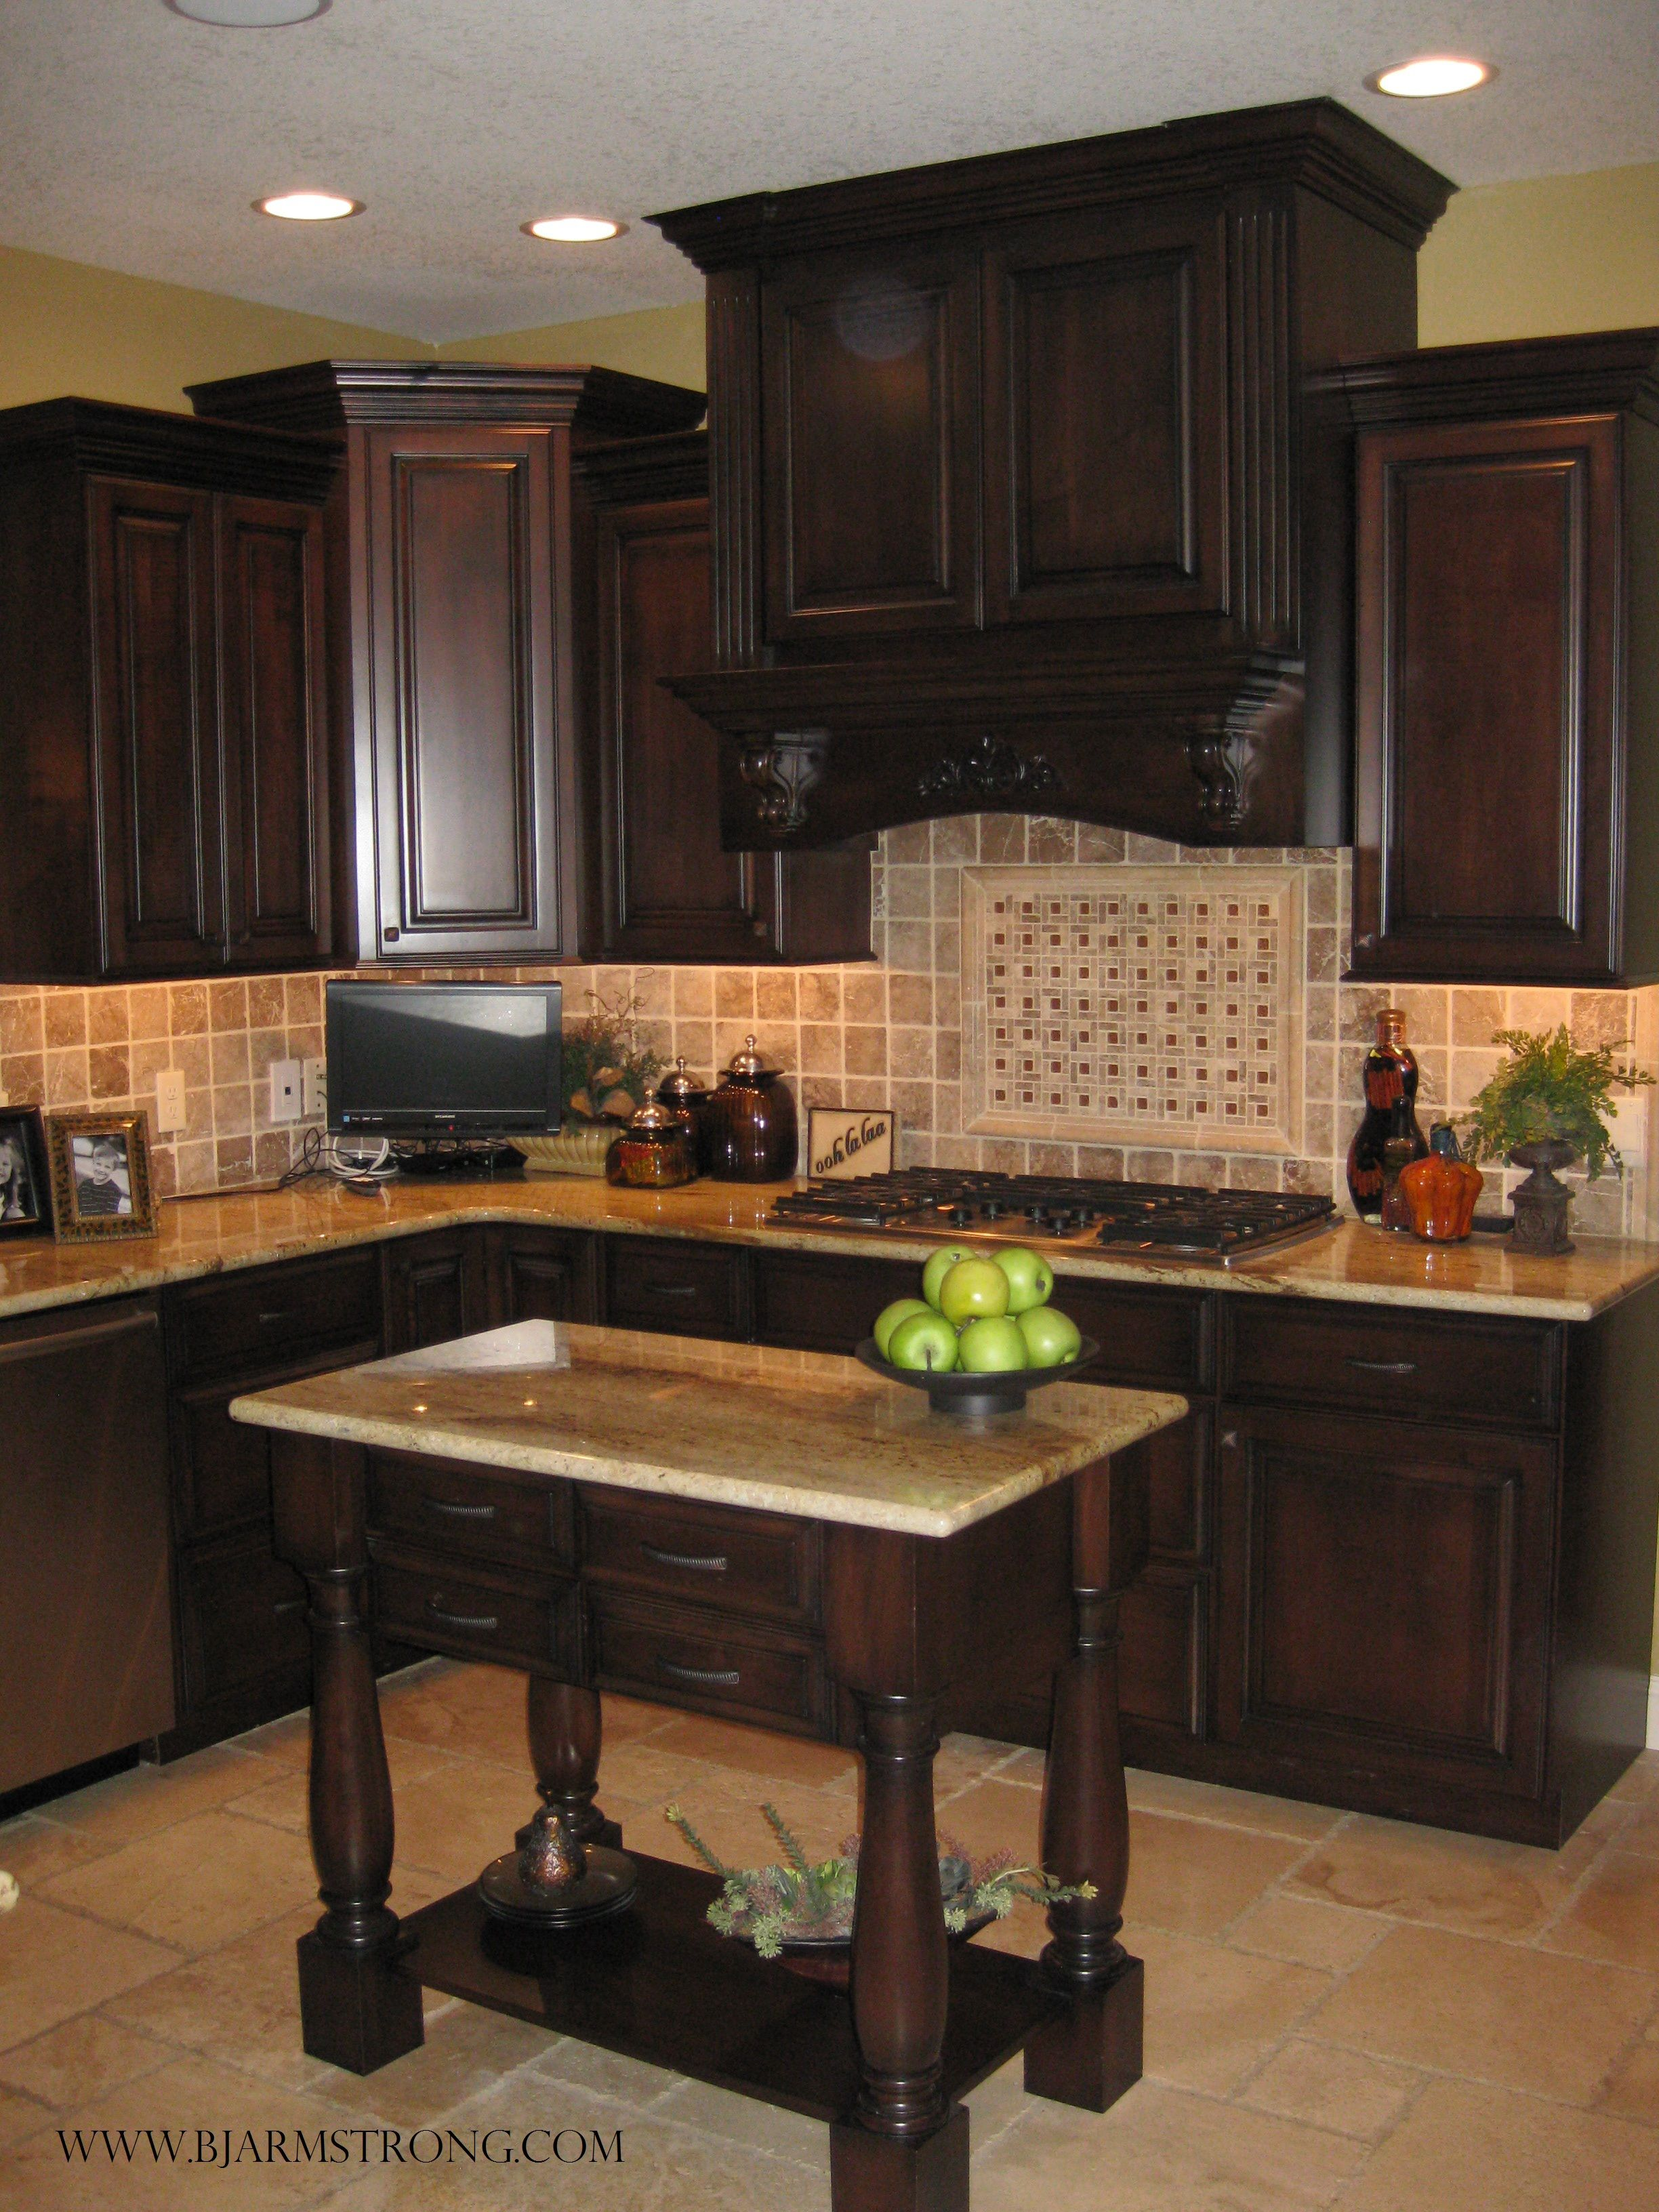 Custom Kitchen Cabinets Island With Granite Countertops